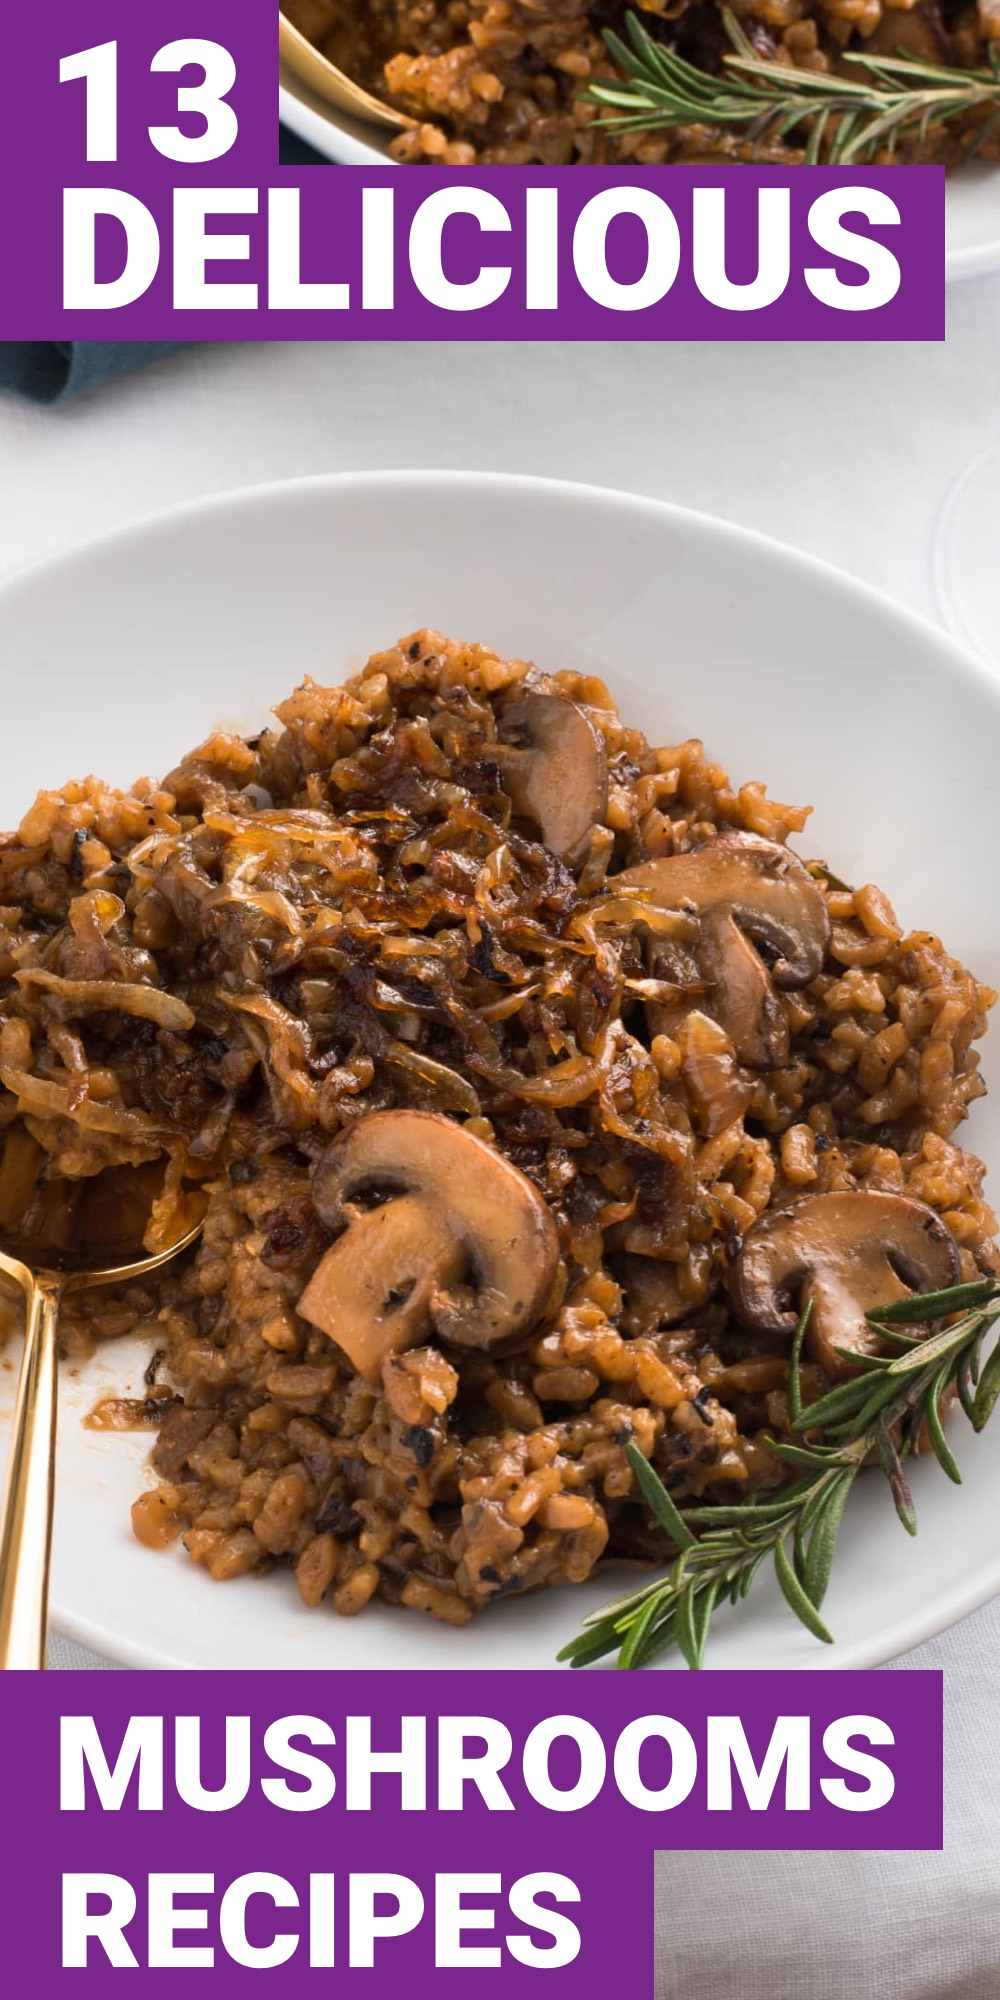 Mushrooms can help balance out any recipe. Here are 13 mushroom recipes that you'll want to make tonight.